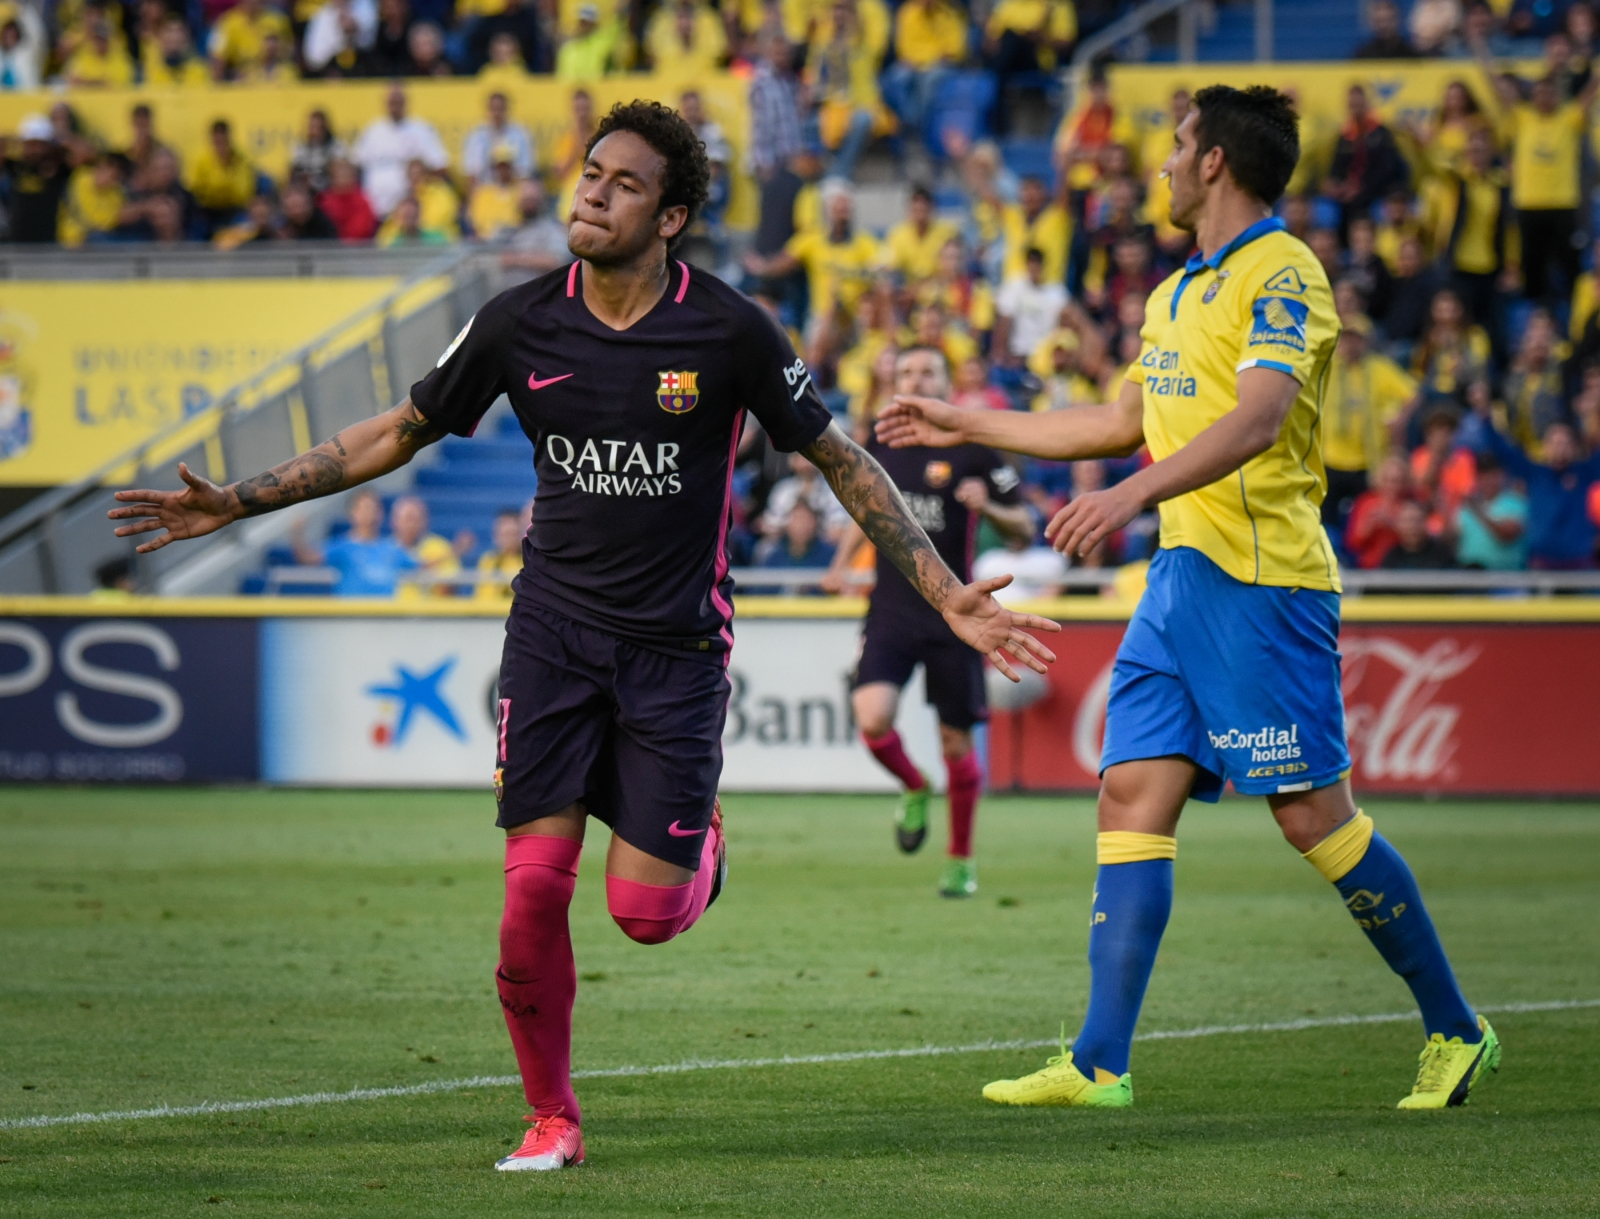 La Liga to file complaint against PSG over Neymar approach